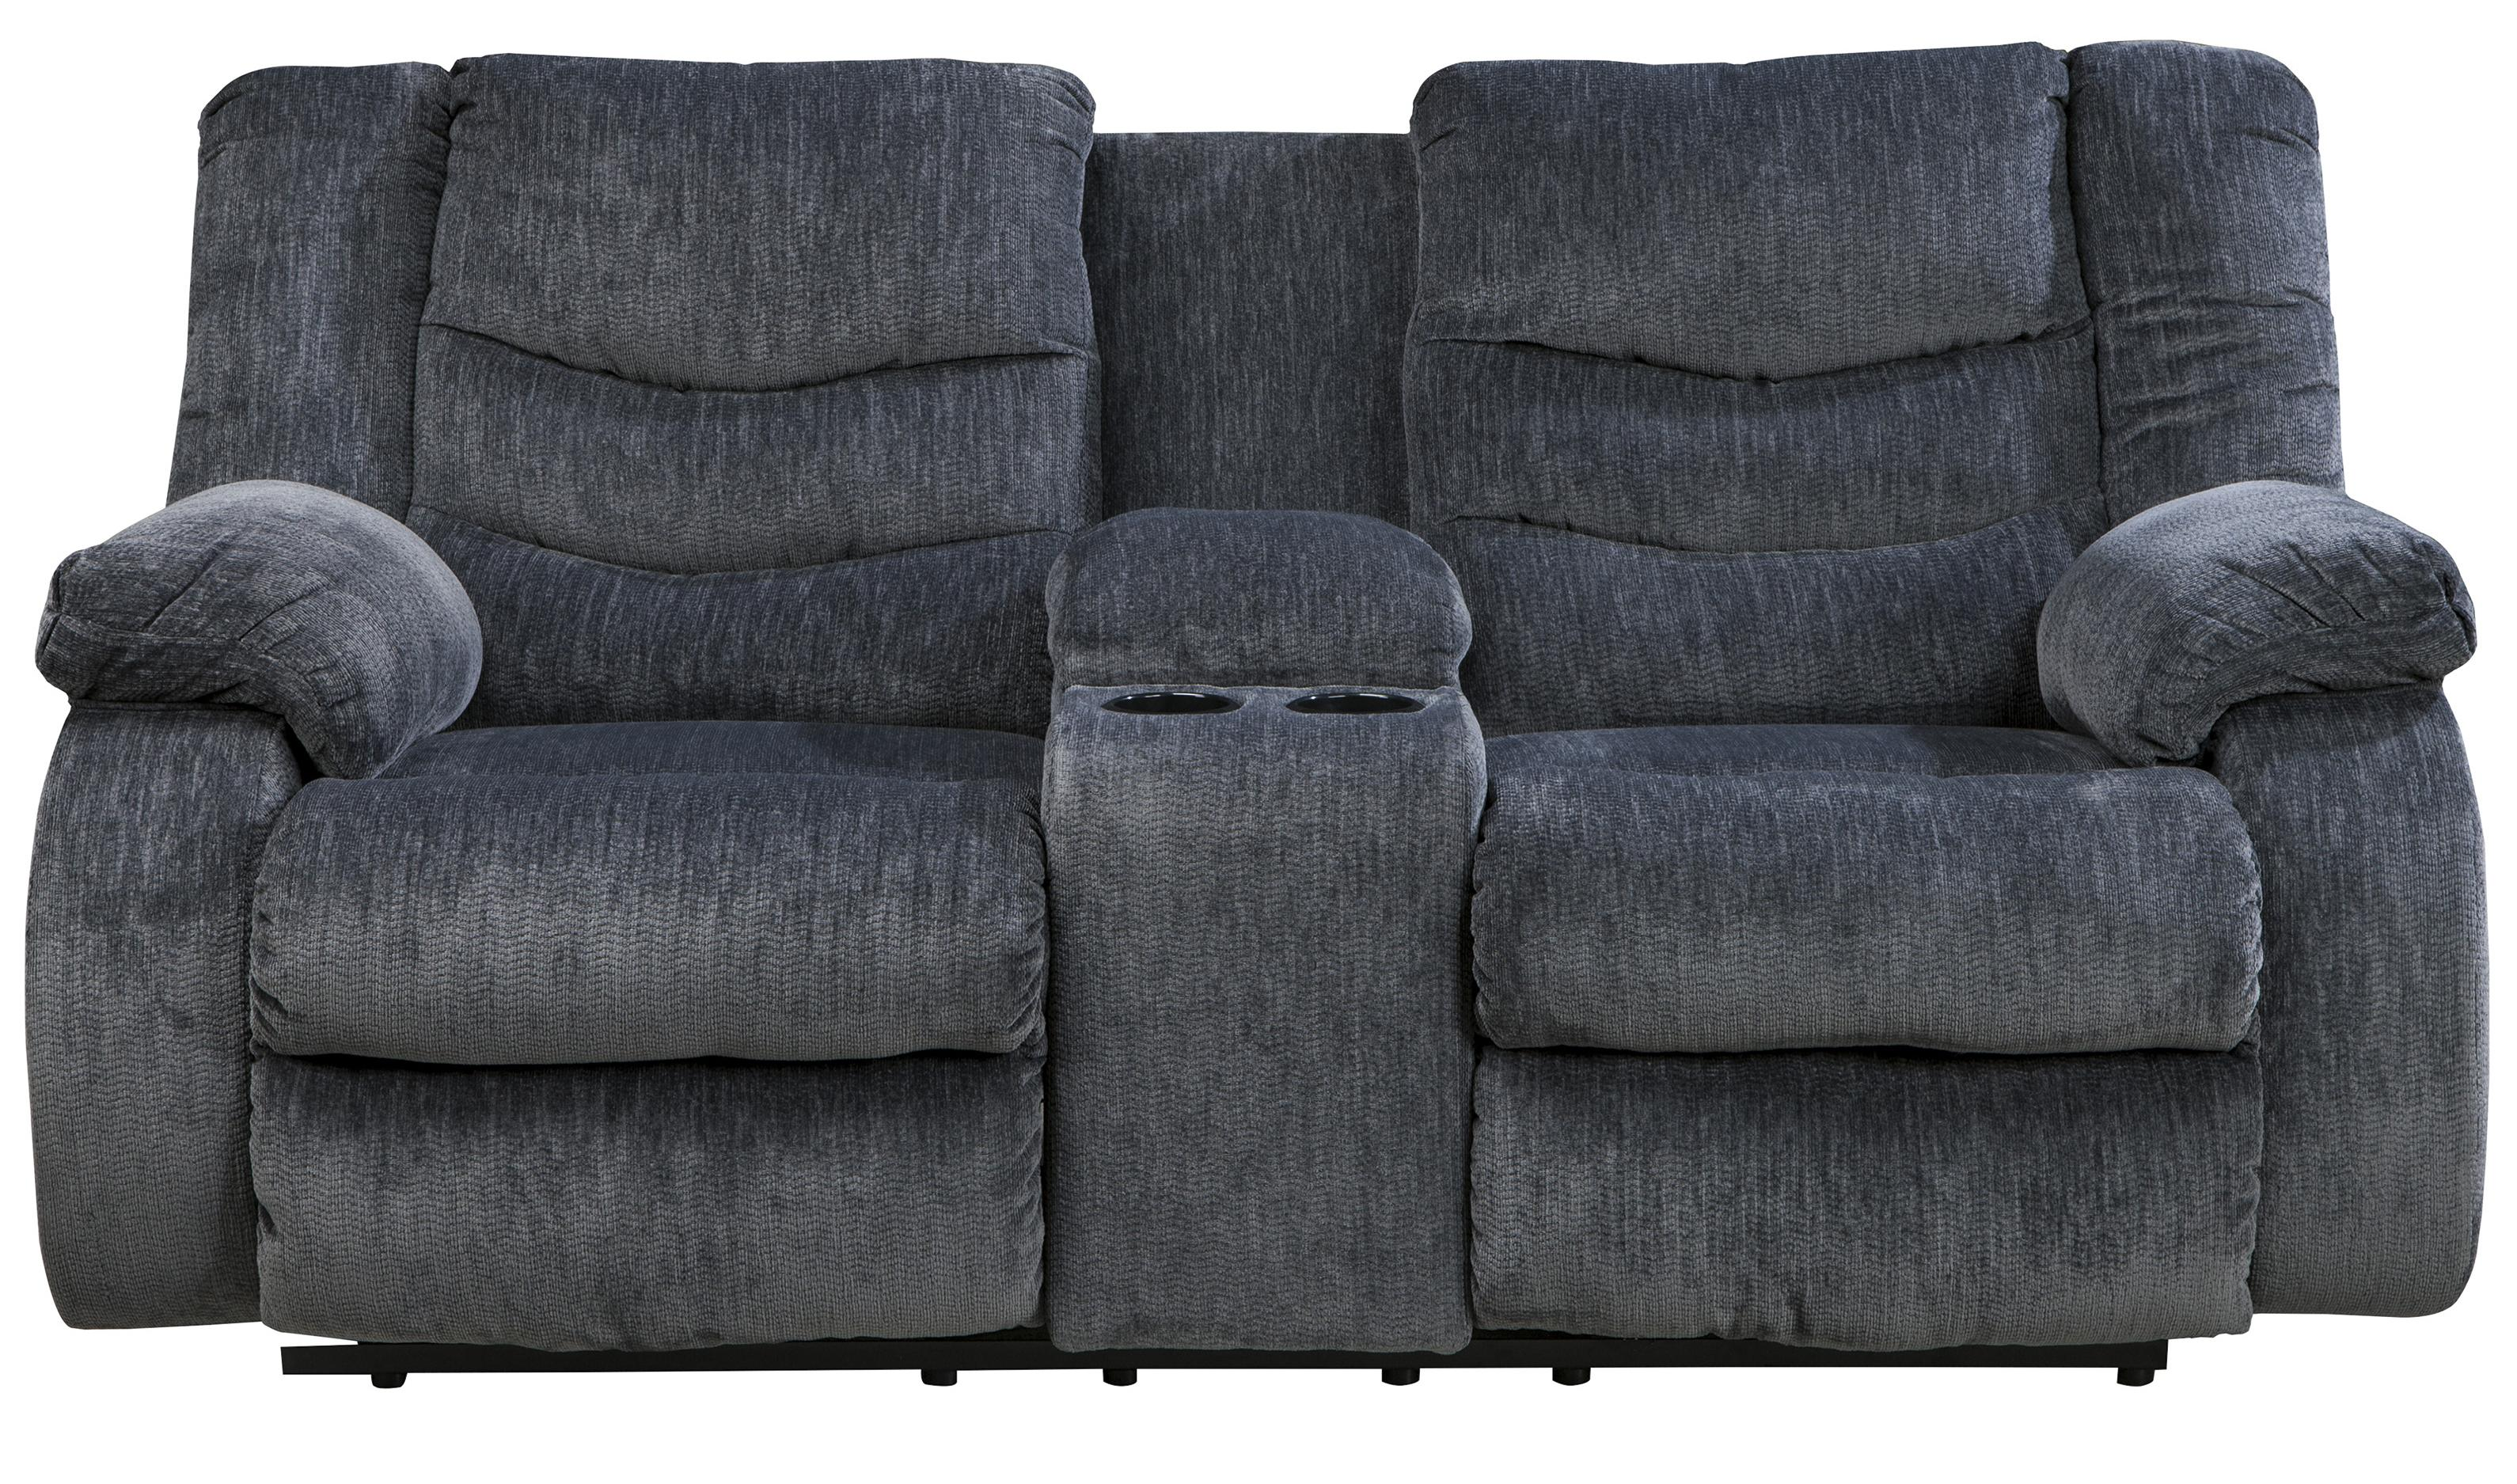 Signature Design by Ashley Garek - Blue Double Reclining Loveseat w/ Console - Item Number: 9200194